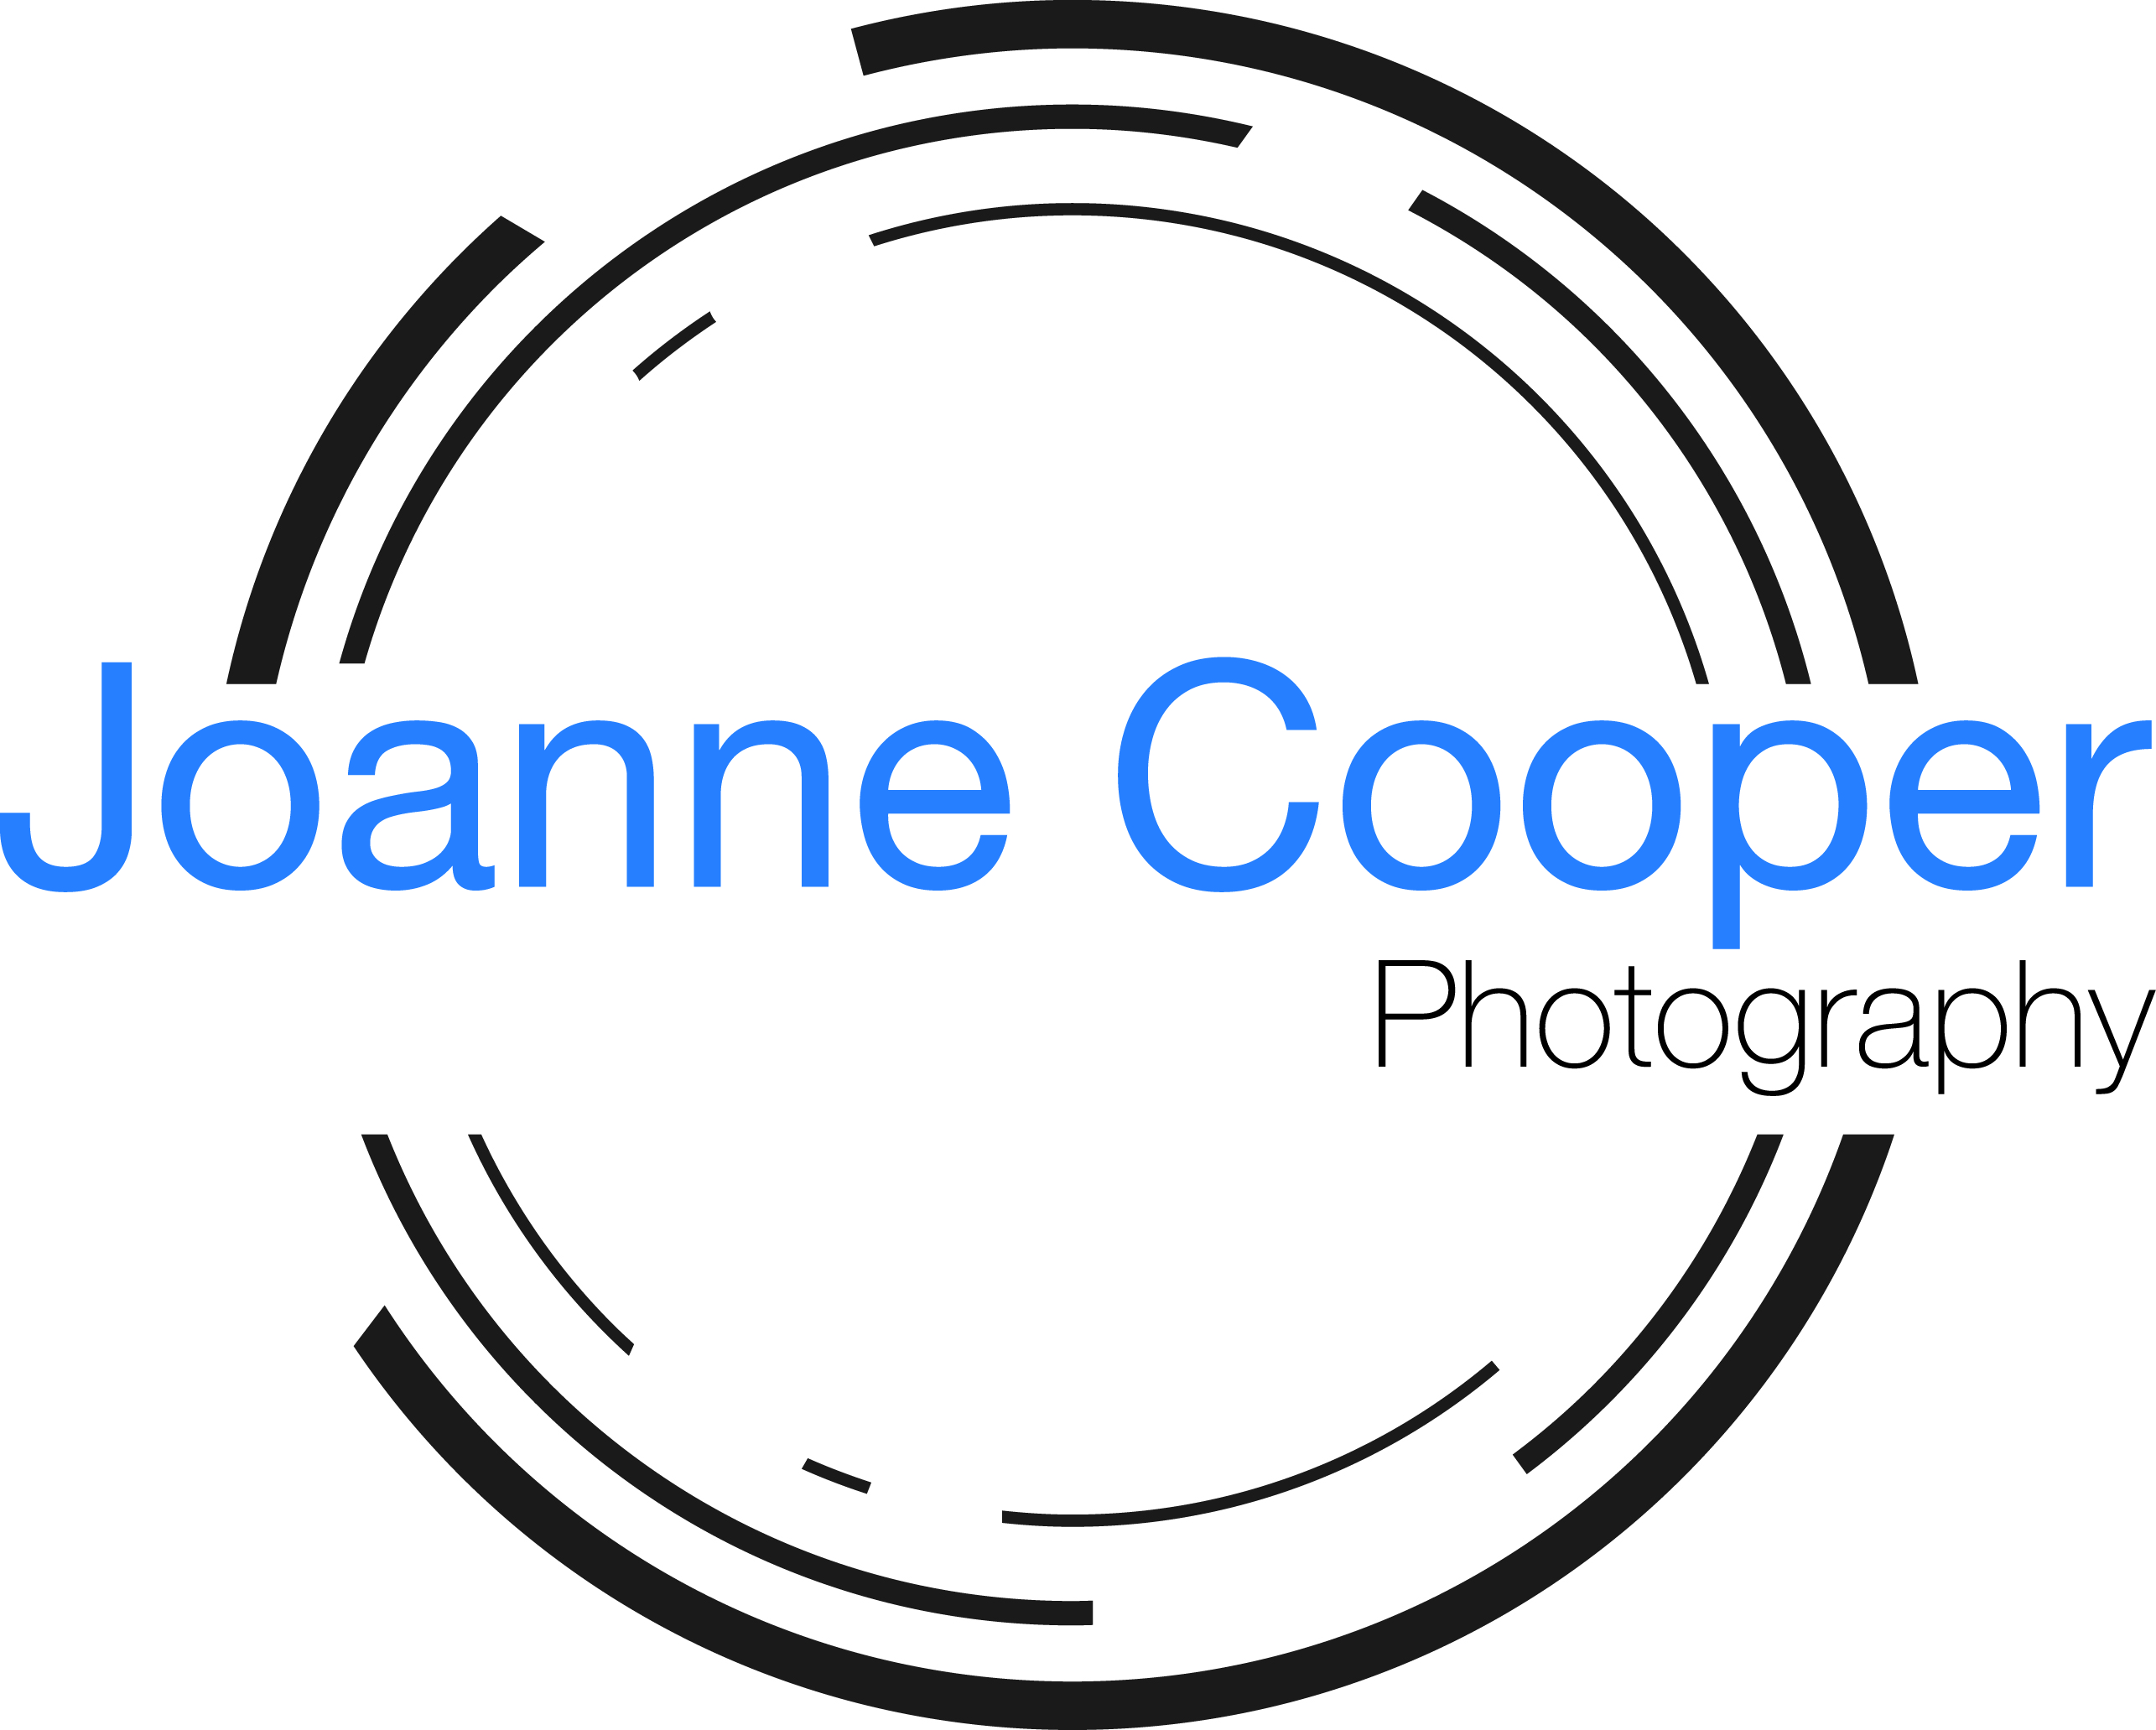 Joanne Cooper Photography